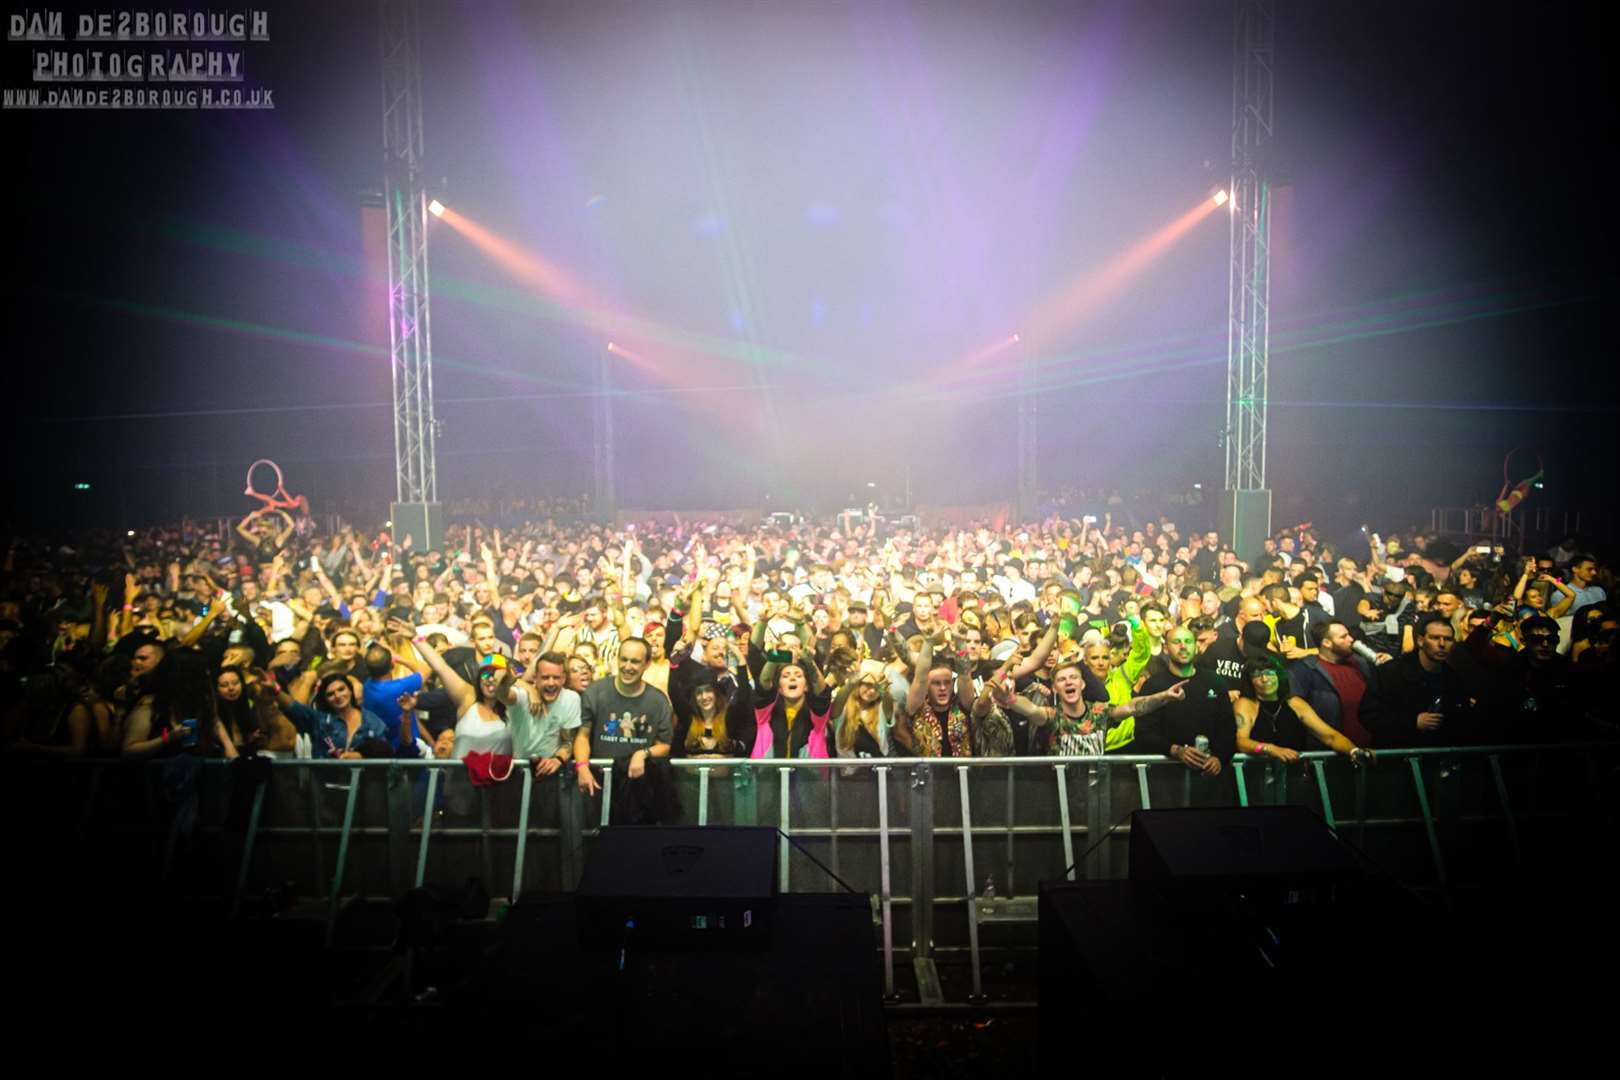 6,000 people attended Connected Festival in 2019. Credit: Dan Desborough